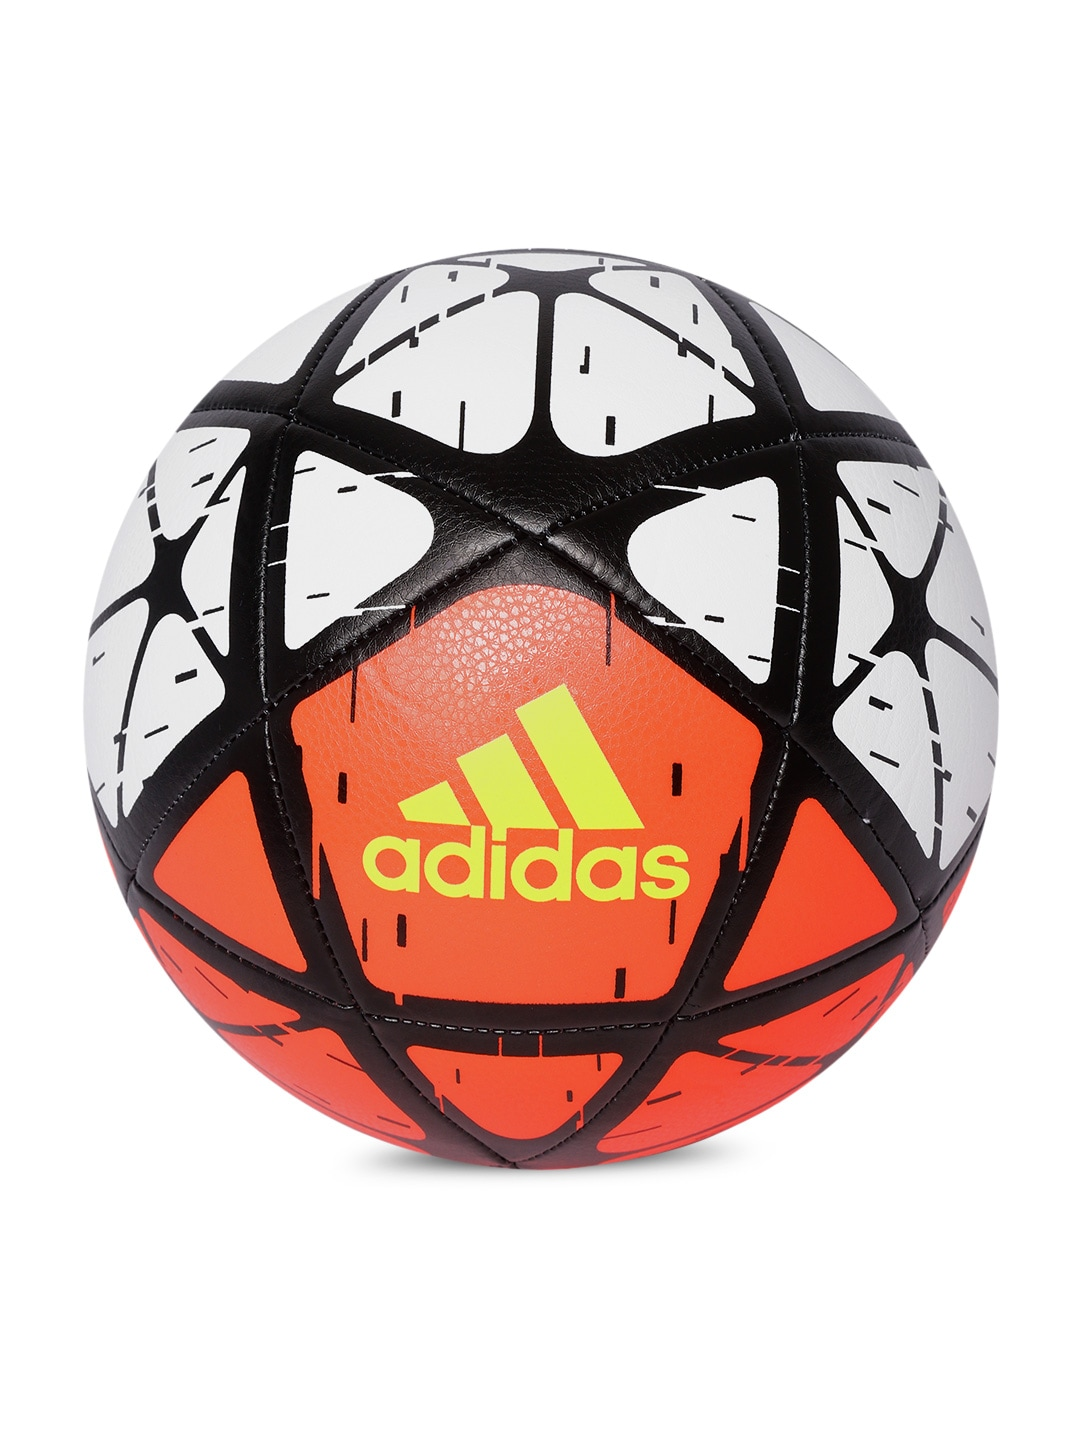 8f60b62c946d Adidas Football - Buy Adidas Soccer Ball Online in India